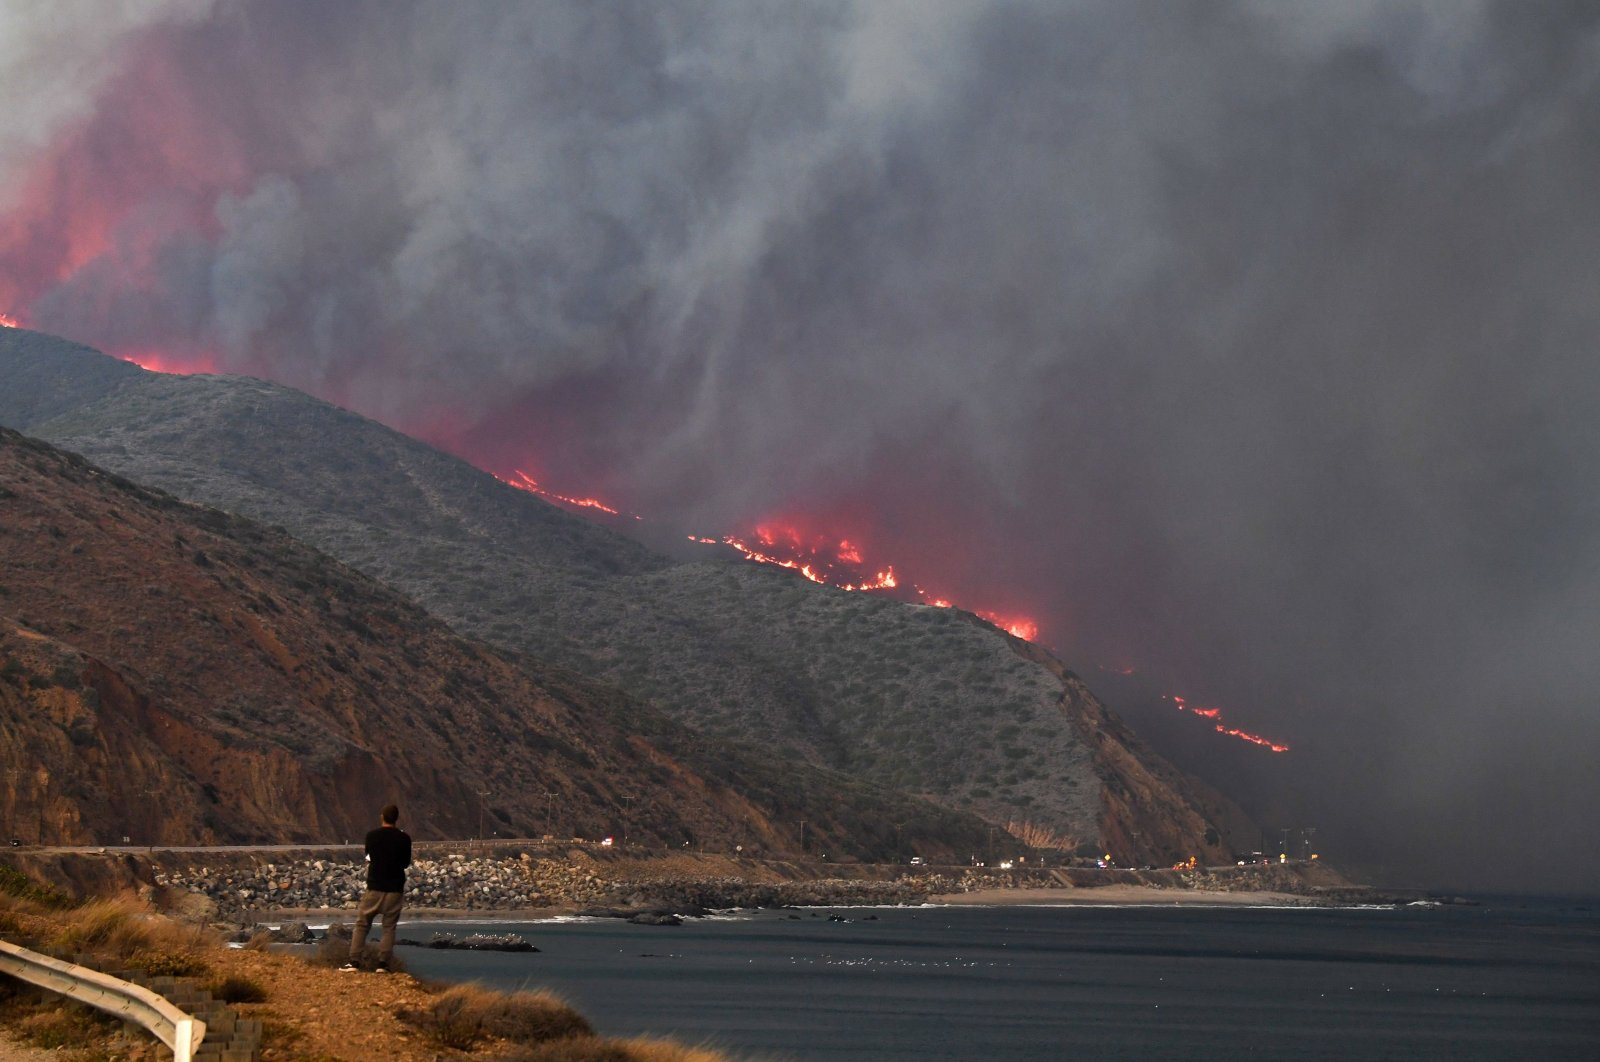 A man watches as the Woolsey Fire reaches the ocean along the Pacific Coast Highway (Highway 1) near Malibu, California, Nov. 9, 2018. (AFP Photo)